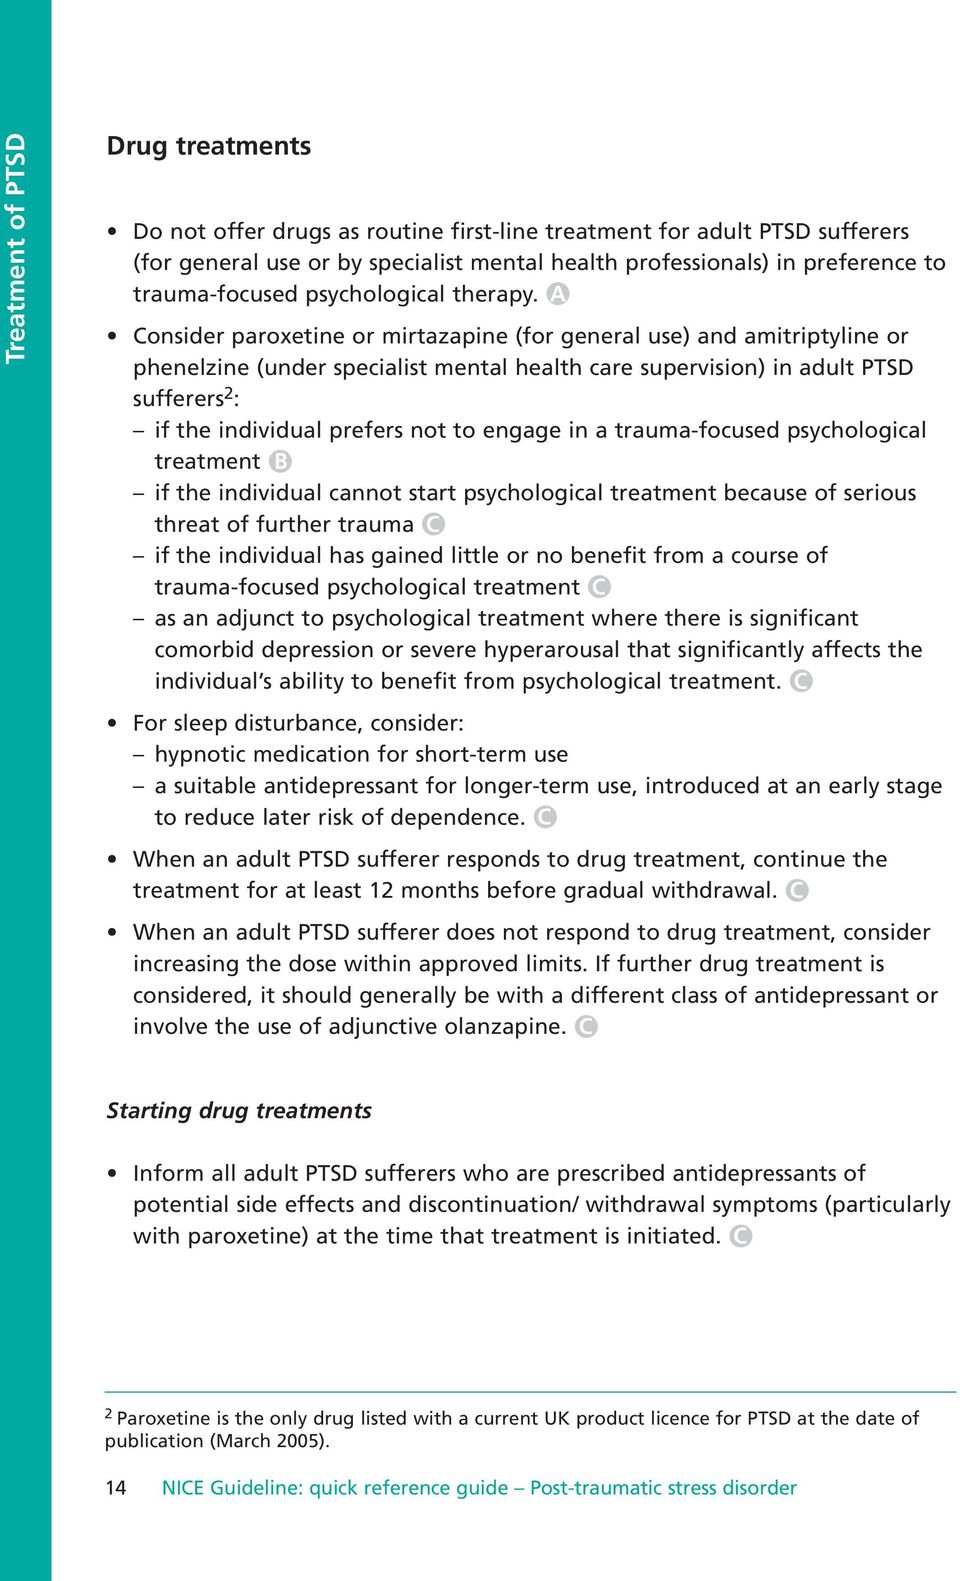 A Consider paroxetine or mirtazapine (for general use) and amitriptyline or phenelzine (under specialist mental health care supervision) in adult PTSD sufferers 2 : if the individual prefers not to